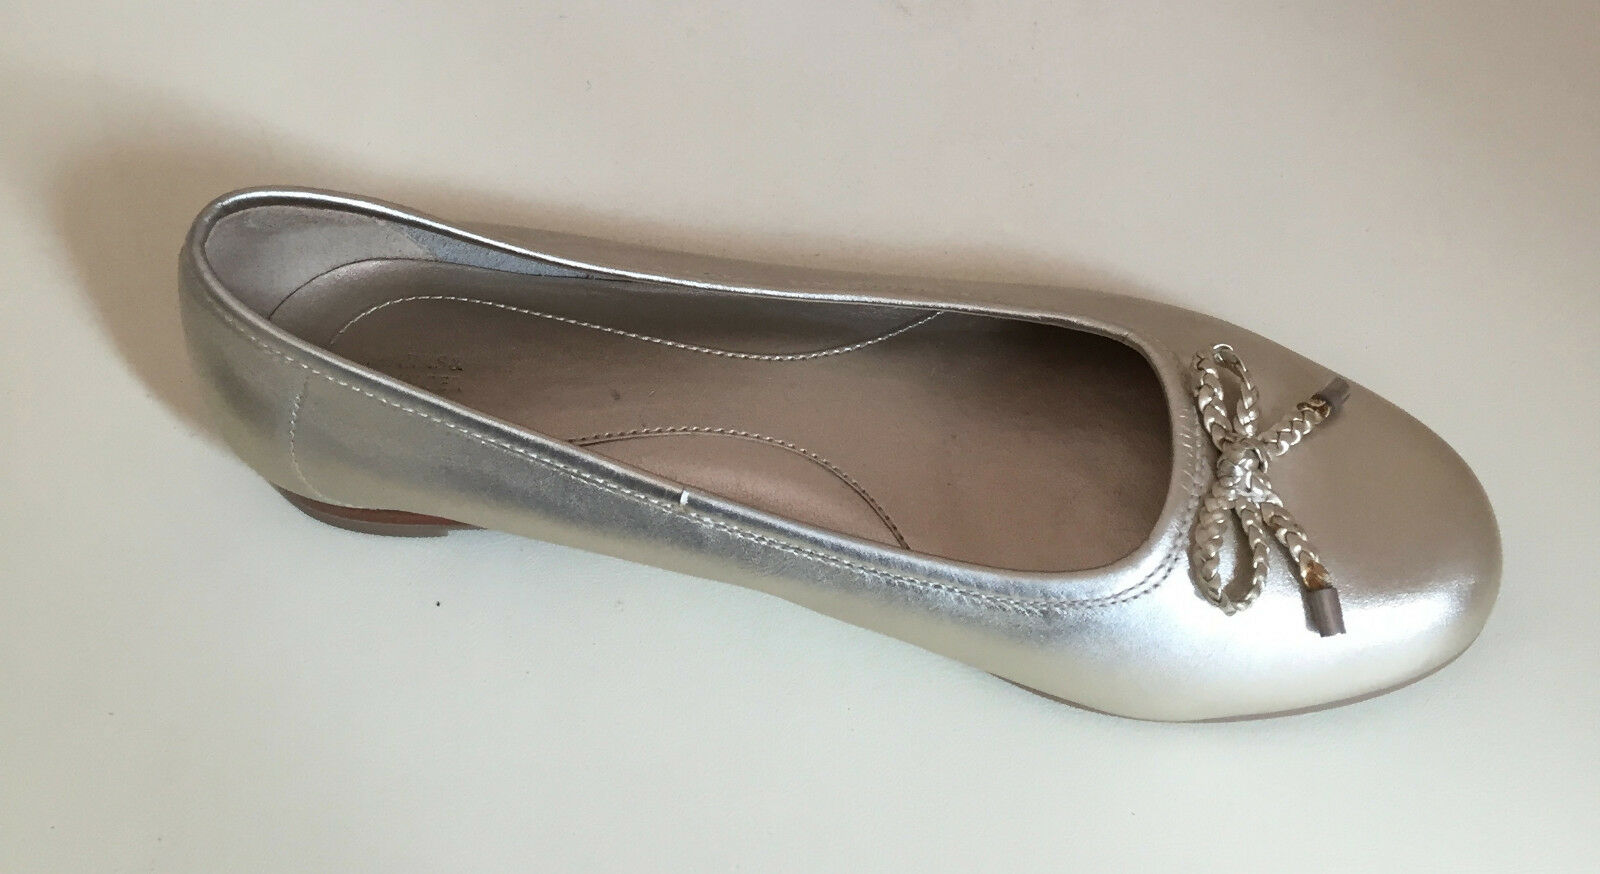 Marks And Spencer Flat shoes Size 5.5 Women's nsmxgg5143